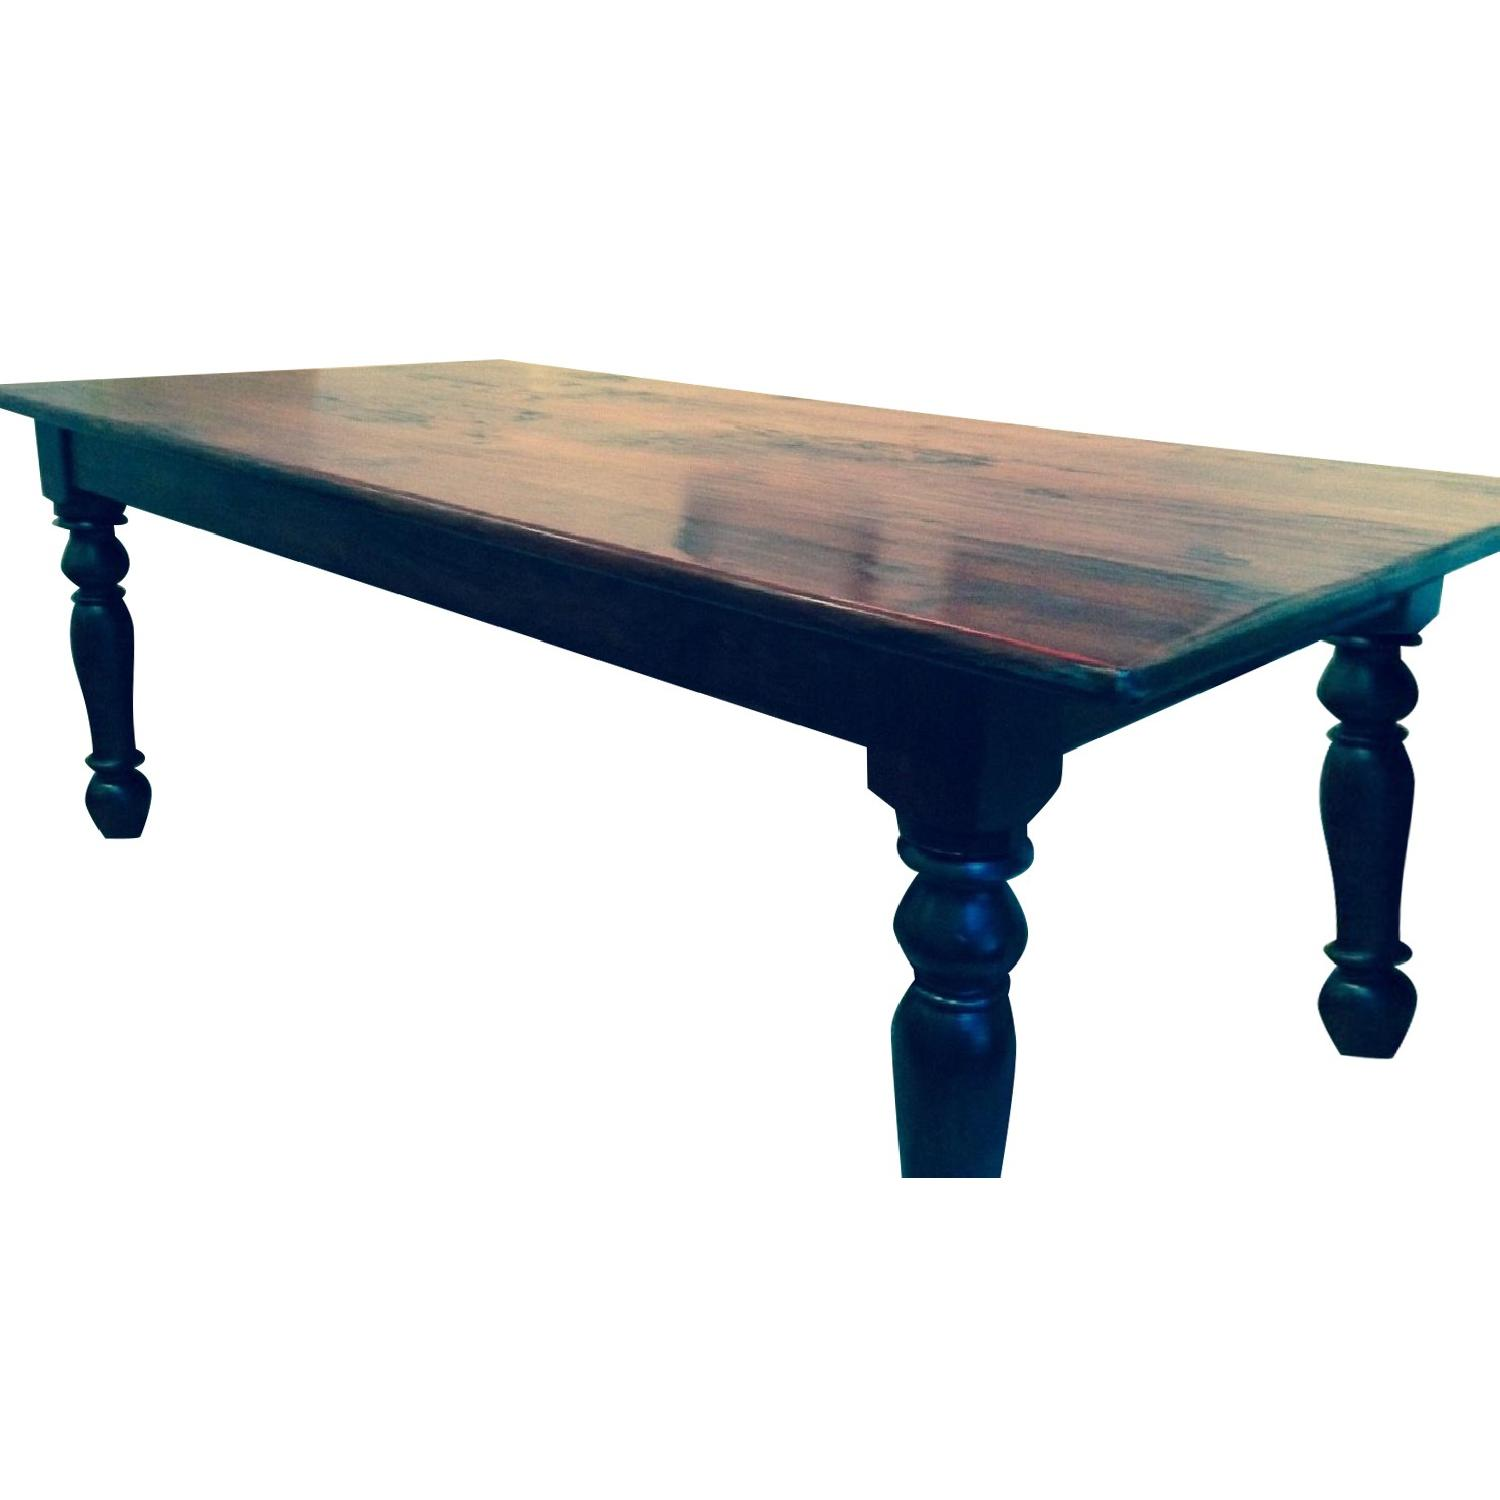 ABC Carpet & Home Solid Wood Dining Table - image-0